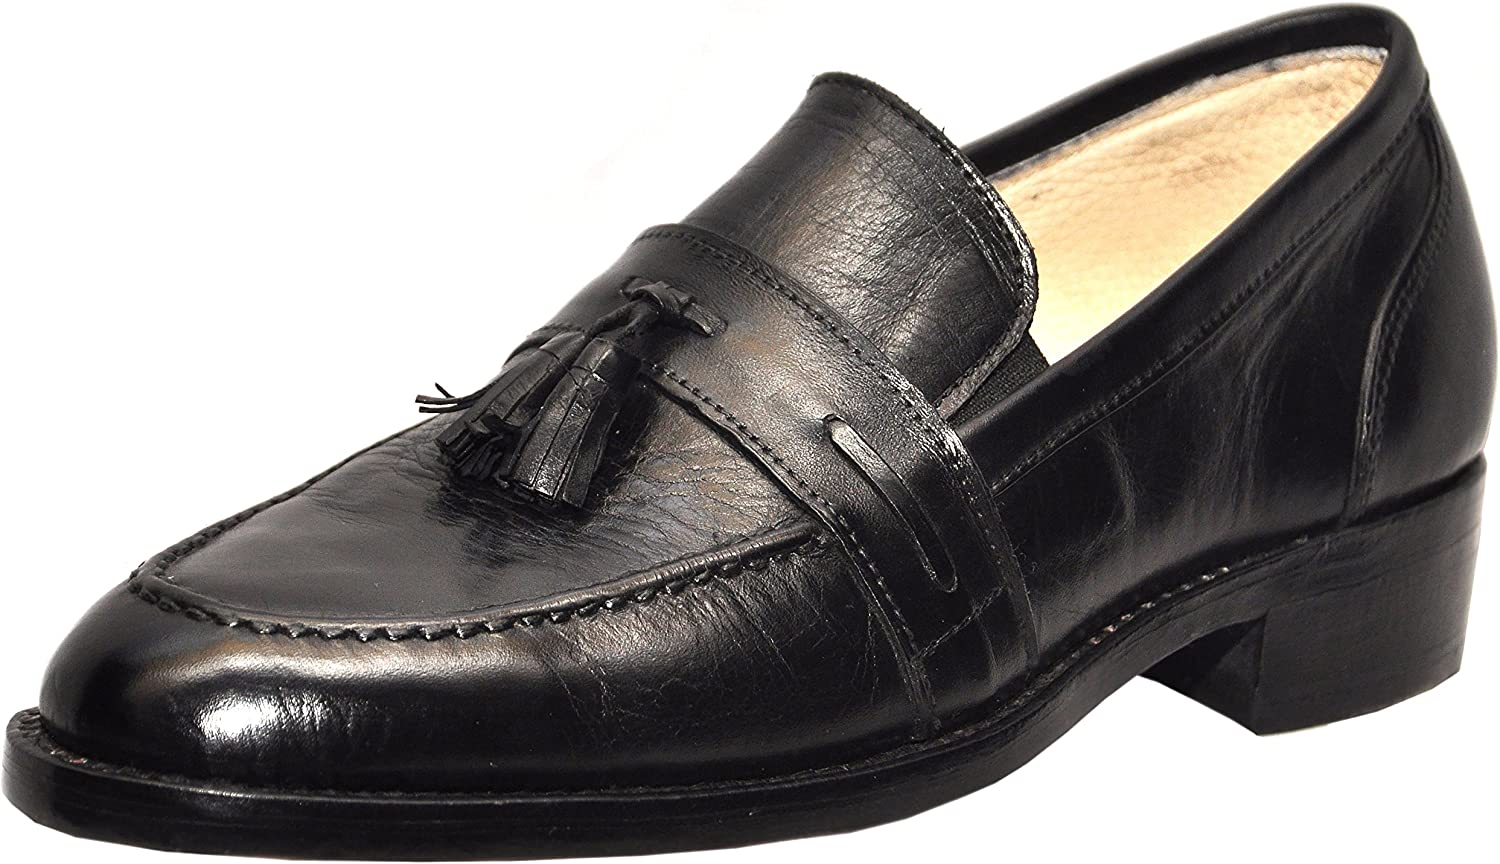 Johny Weber Handmade Black Leather Tassels Style Formal shoes shoes Goodyear Welted Construction